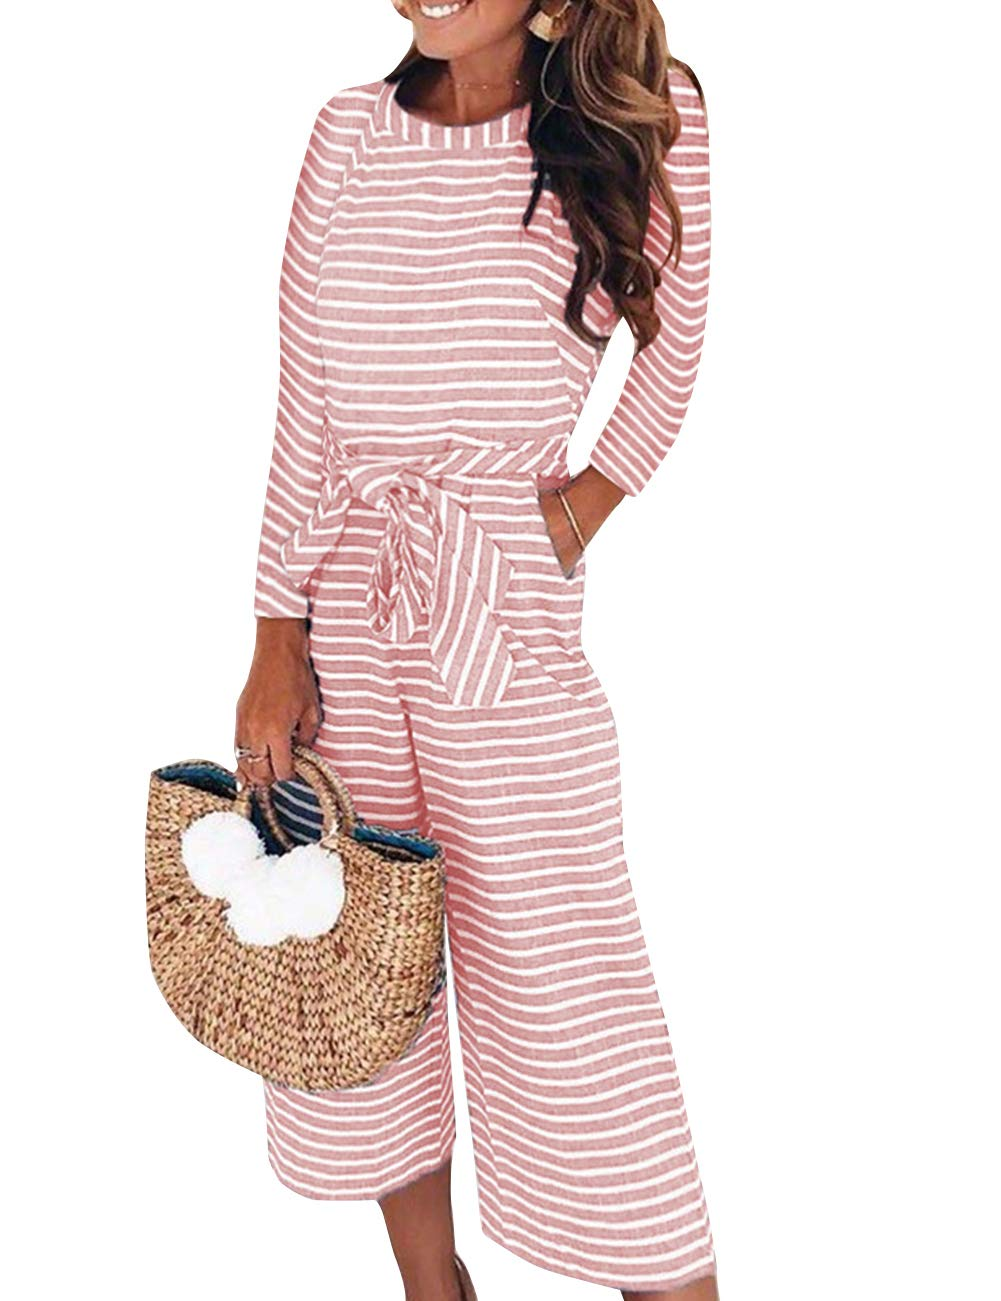 FeelinGirl Women's Striped Jumpsuits High Waisted with Belt All in one Playsuit AKH180080BK01